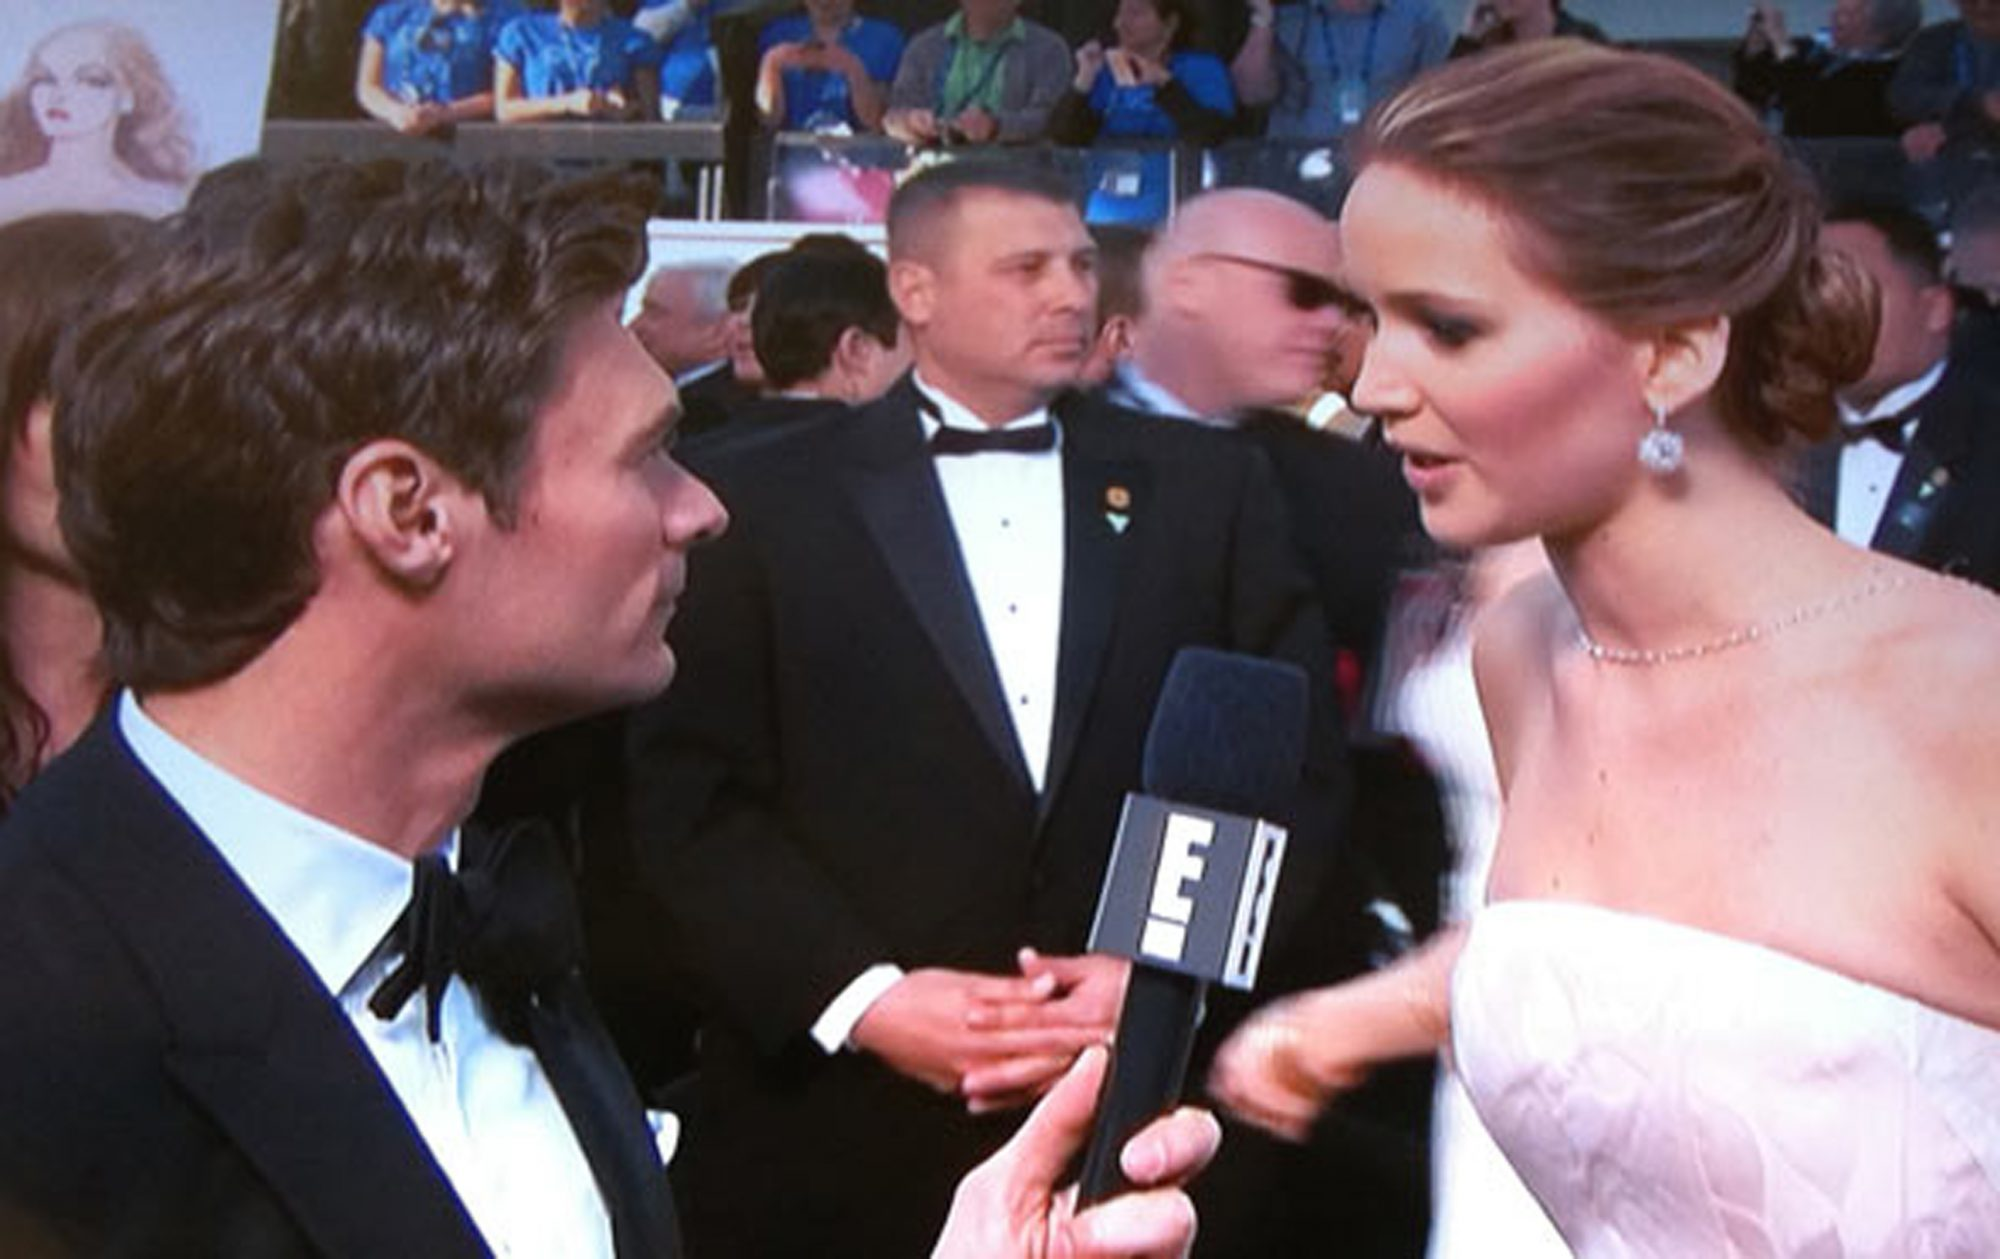 Lawrence talking to Ryan Seacrest at the 2013 Oscars